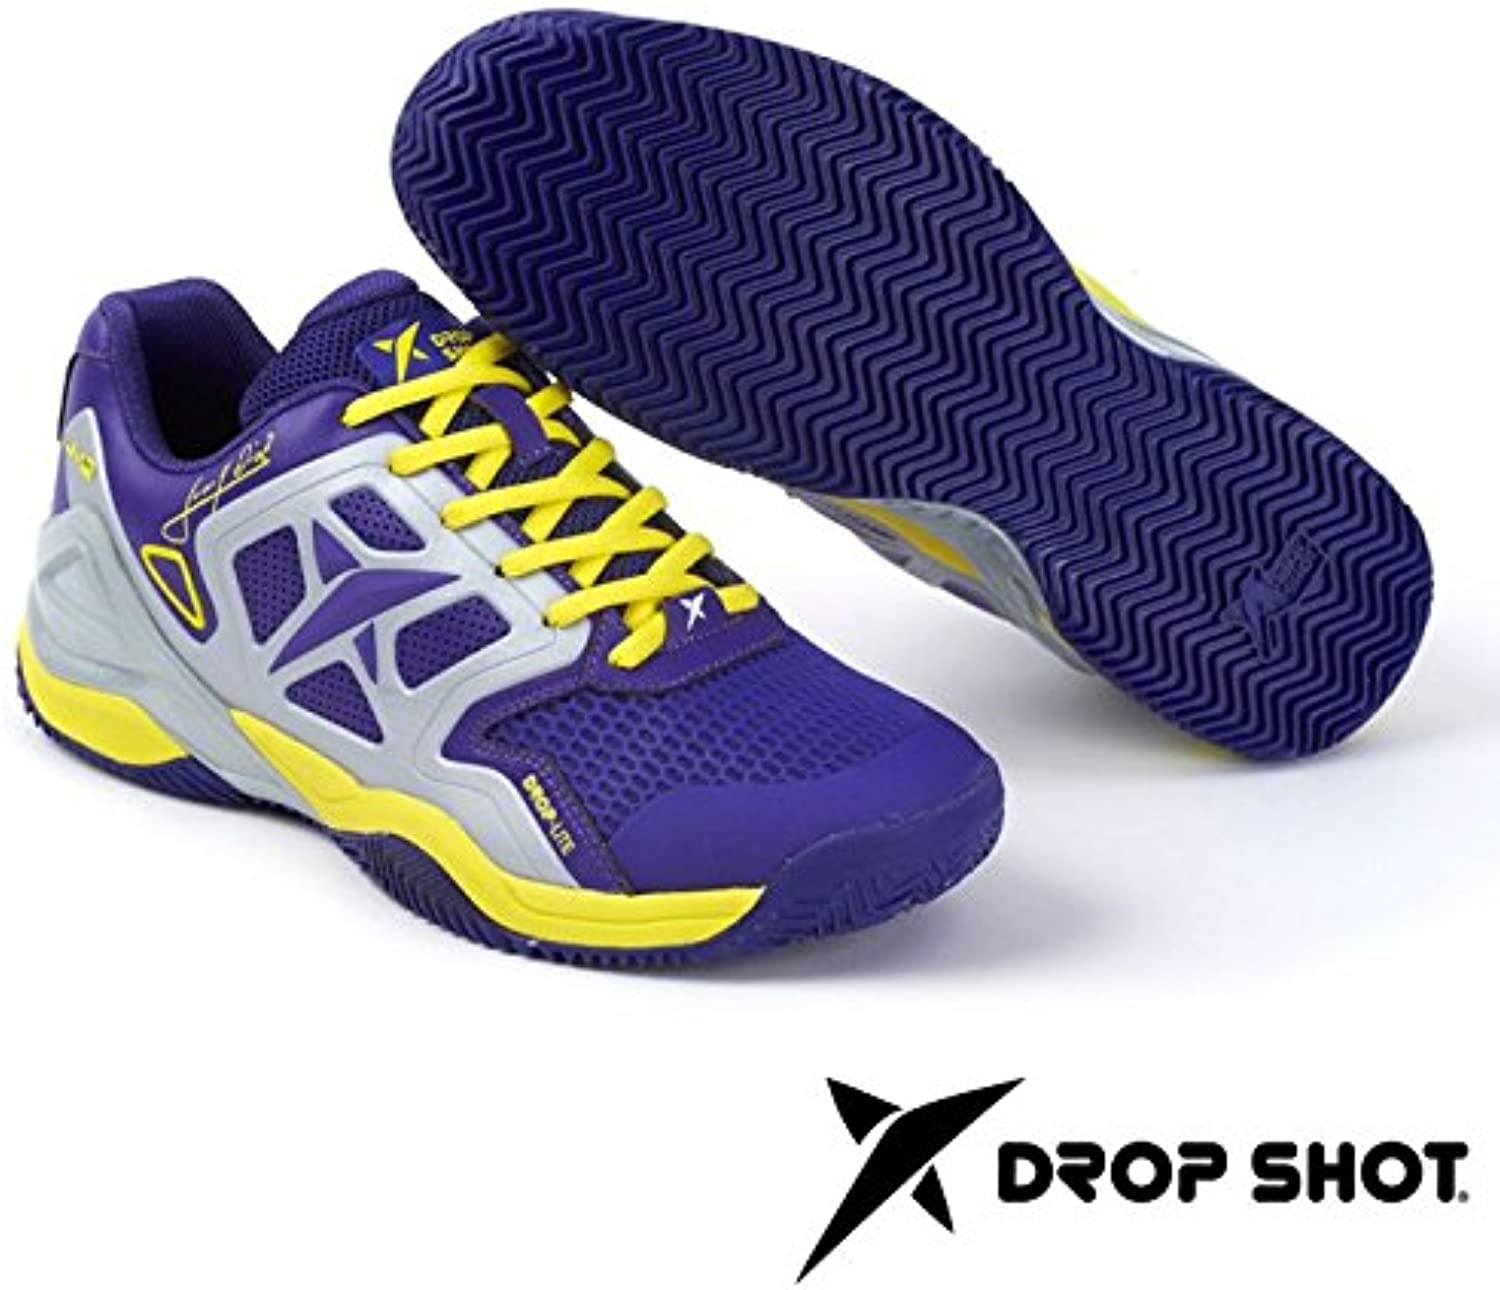 DROP SHOT - Conqueror Tech 4.0, Color Morado, Talla EU 45  -